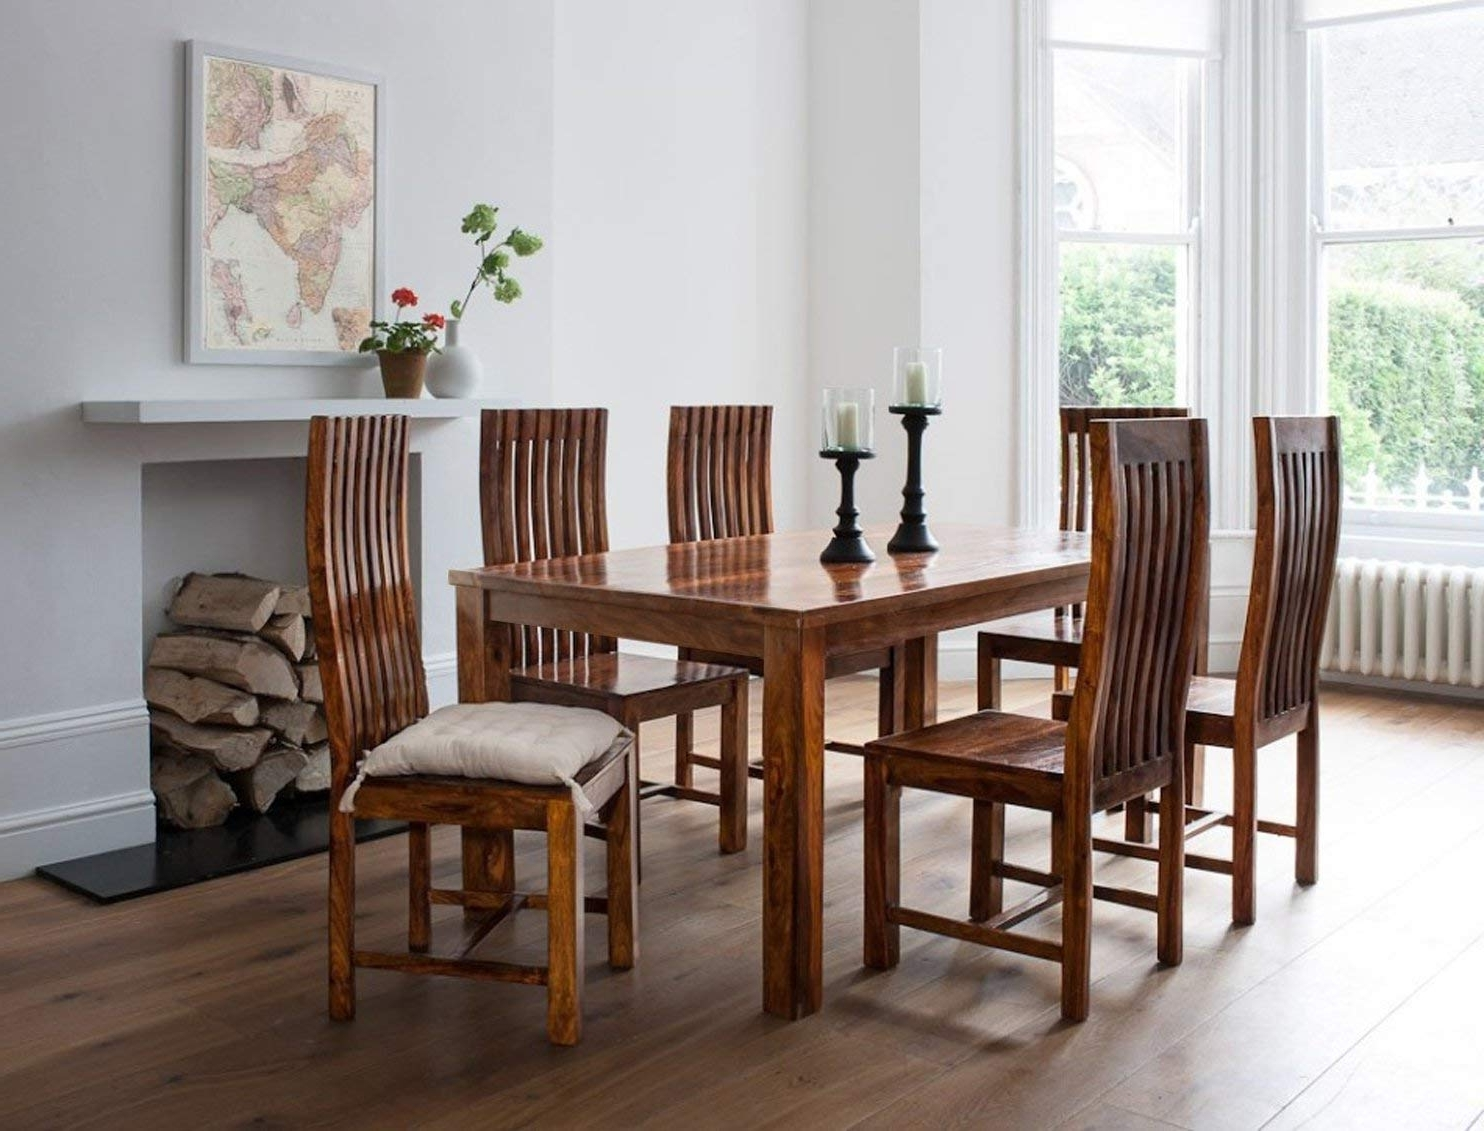 Wood Dining Tables And 6 Chairs Intended For Latest Lifeestyle Handcrafted Sheesham Wood 6 Seater Dining Set (Honey (View 23 of 25)